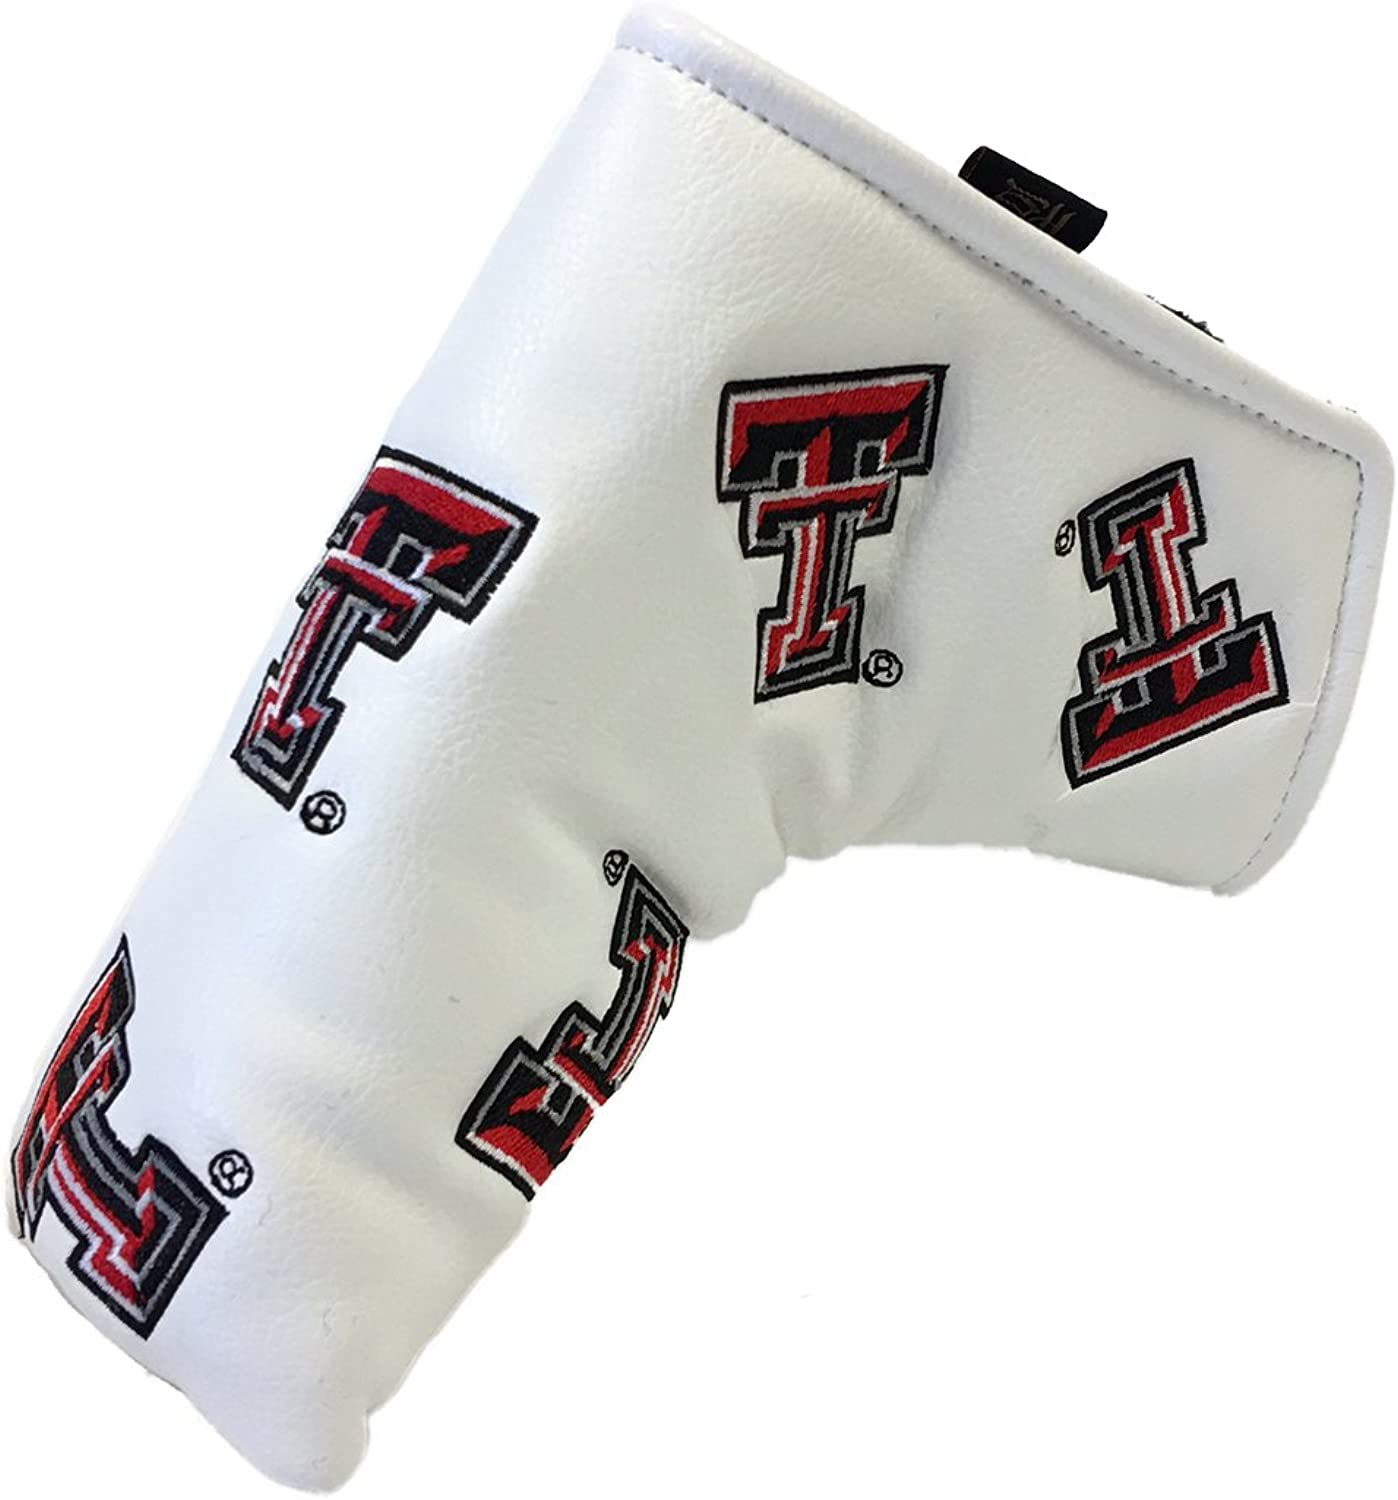 PRG Americas Unisex Blade Putter Cover N A, White